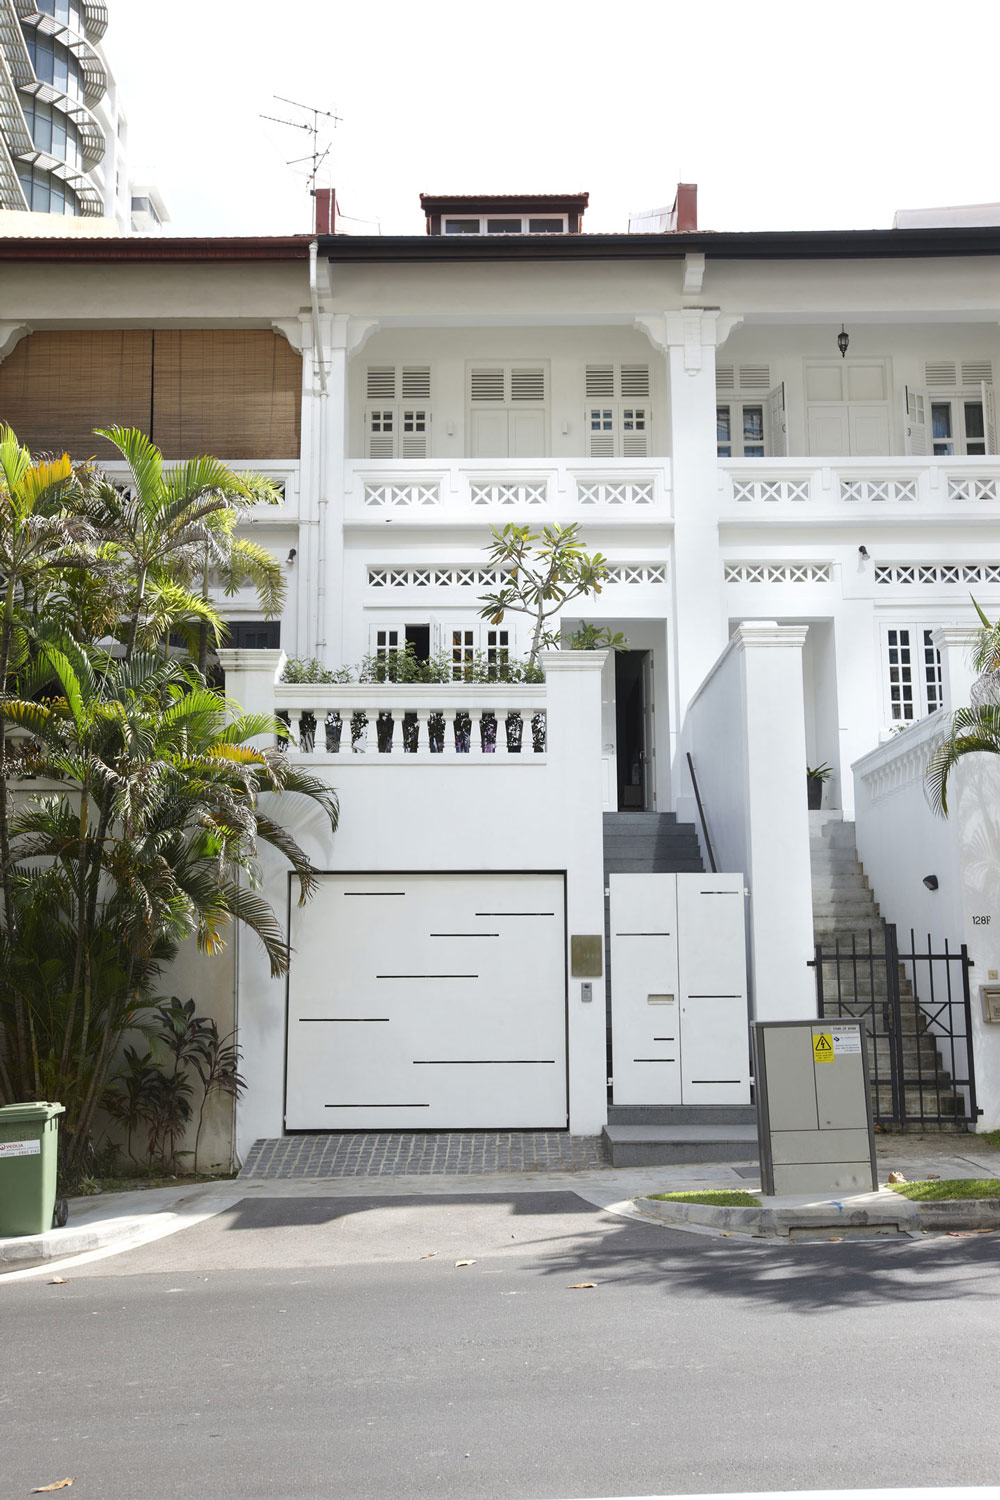 Entrance, Garage, Shop House Renovation in Singapore